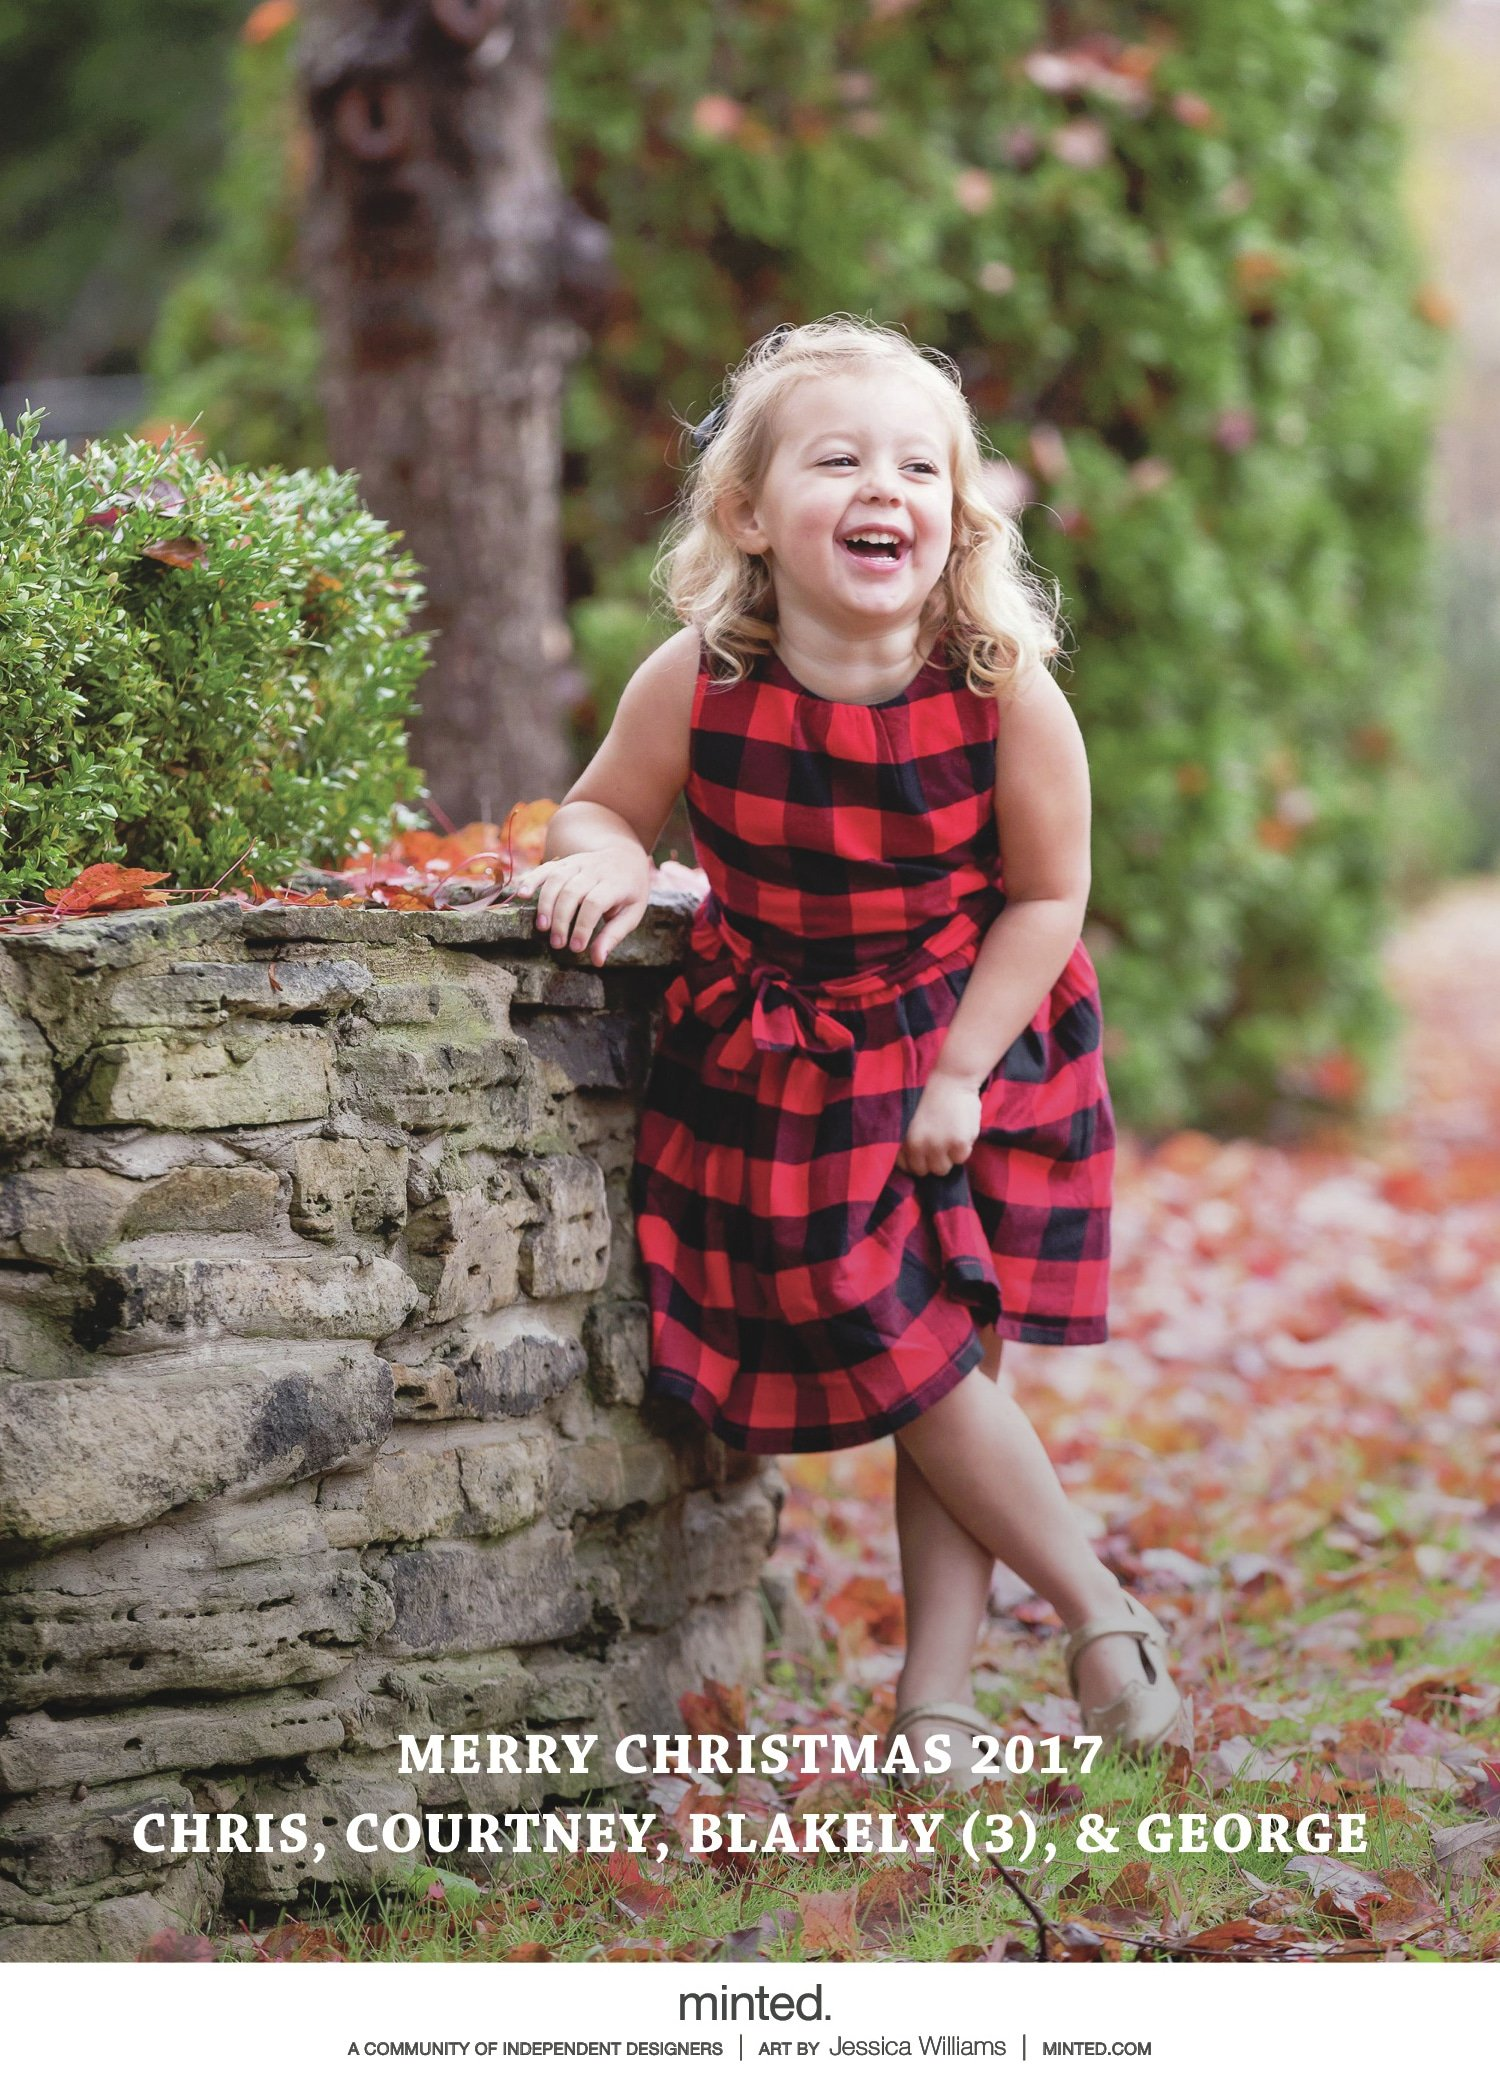 Christmas Card from Minted